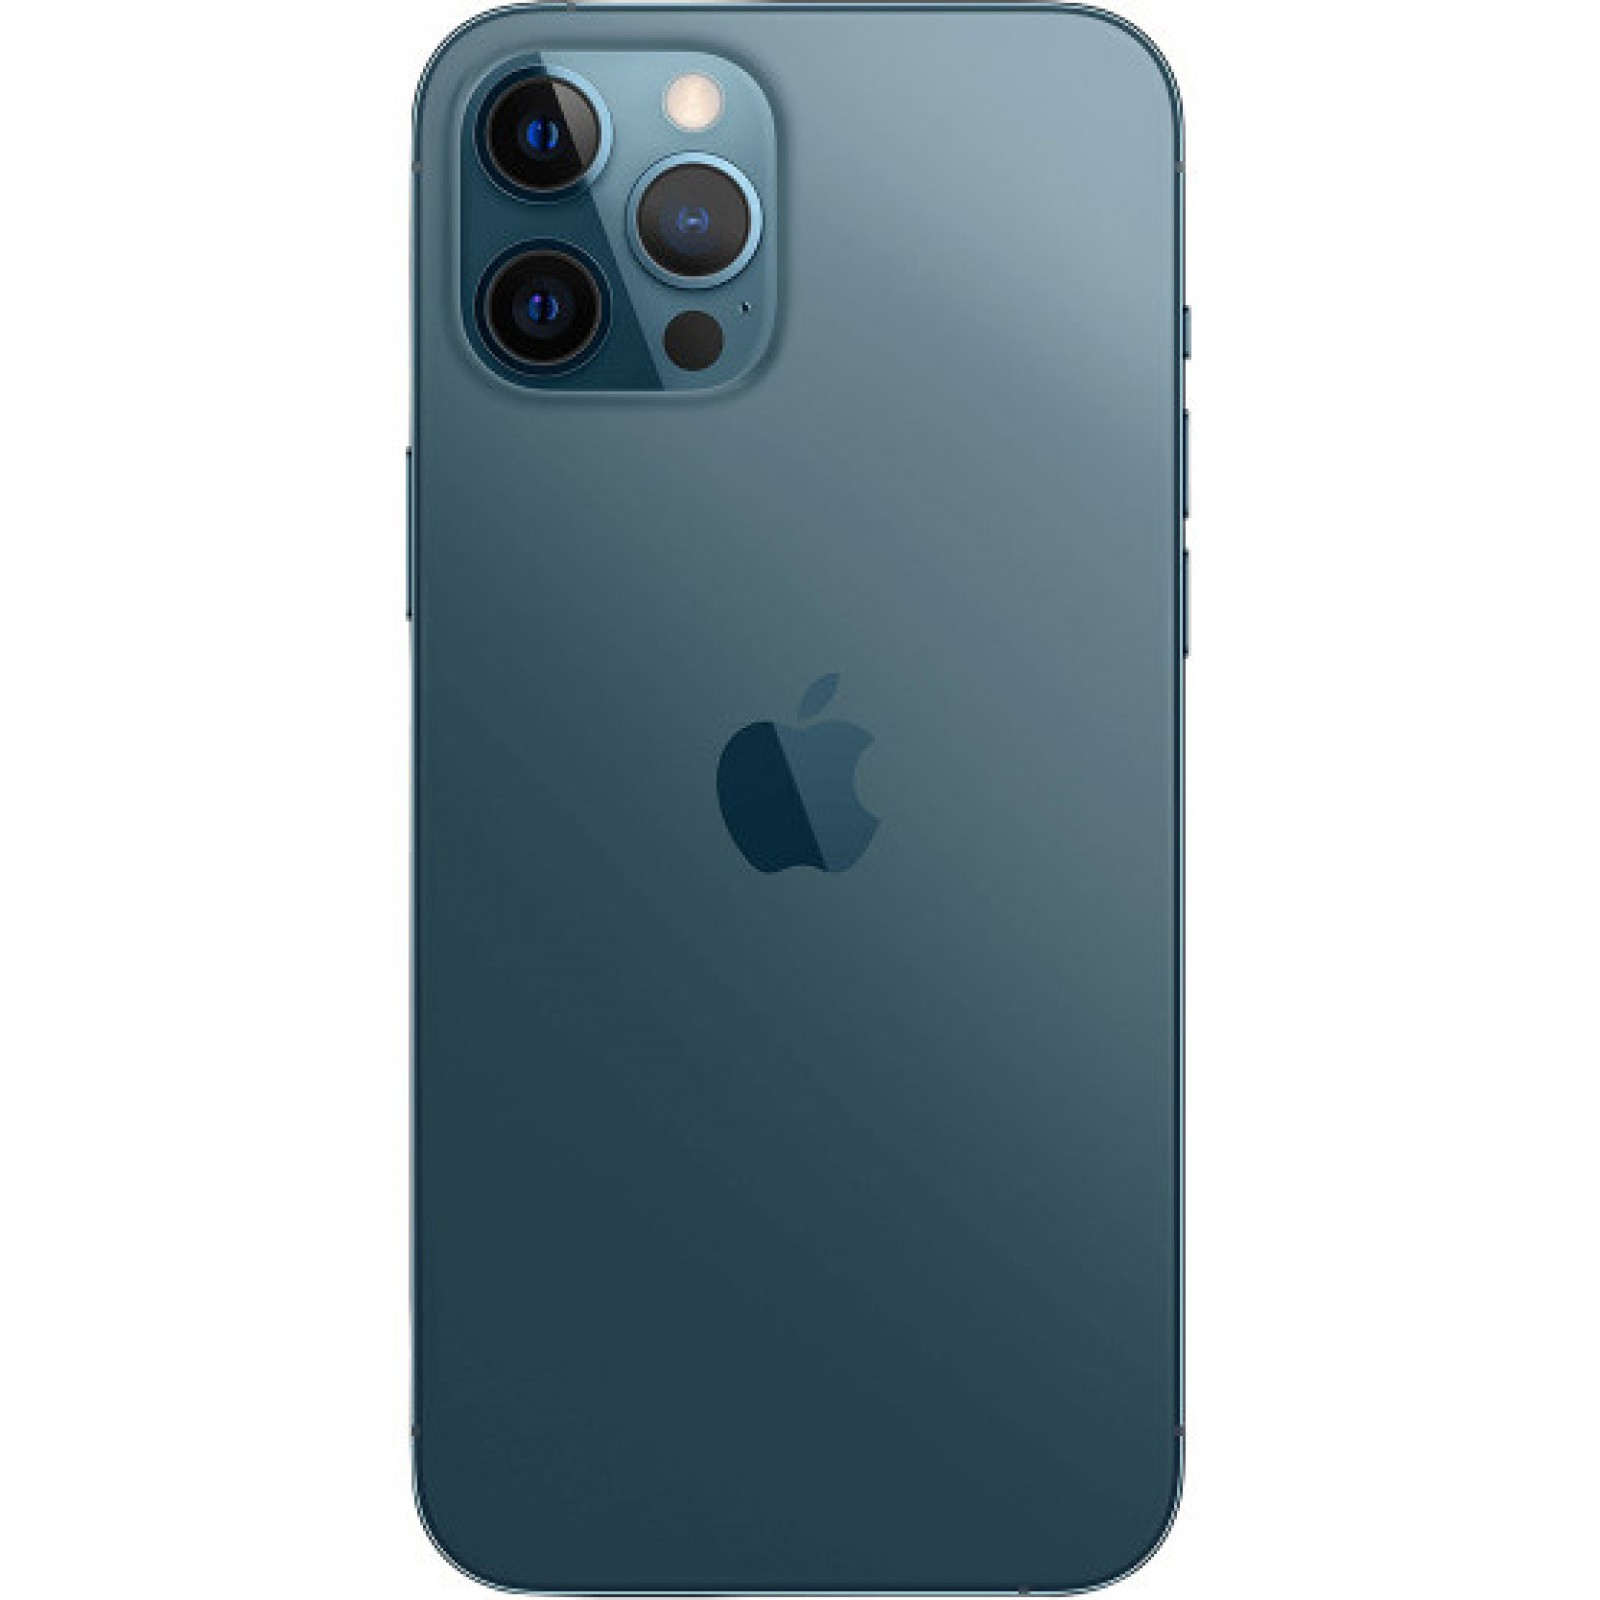 Apple iPhone 12 Pro Max (128GB) Pacific Blue